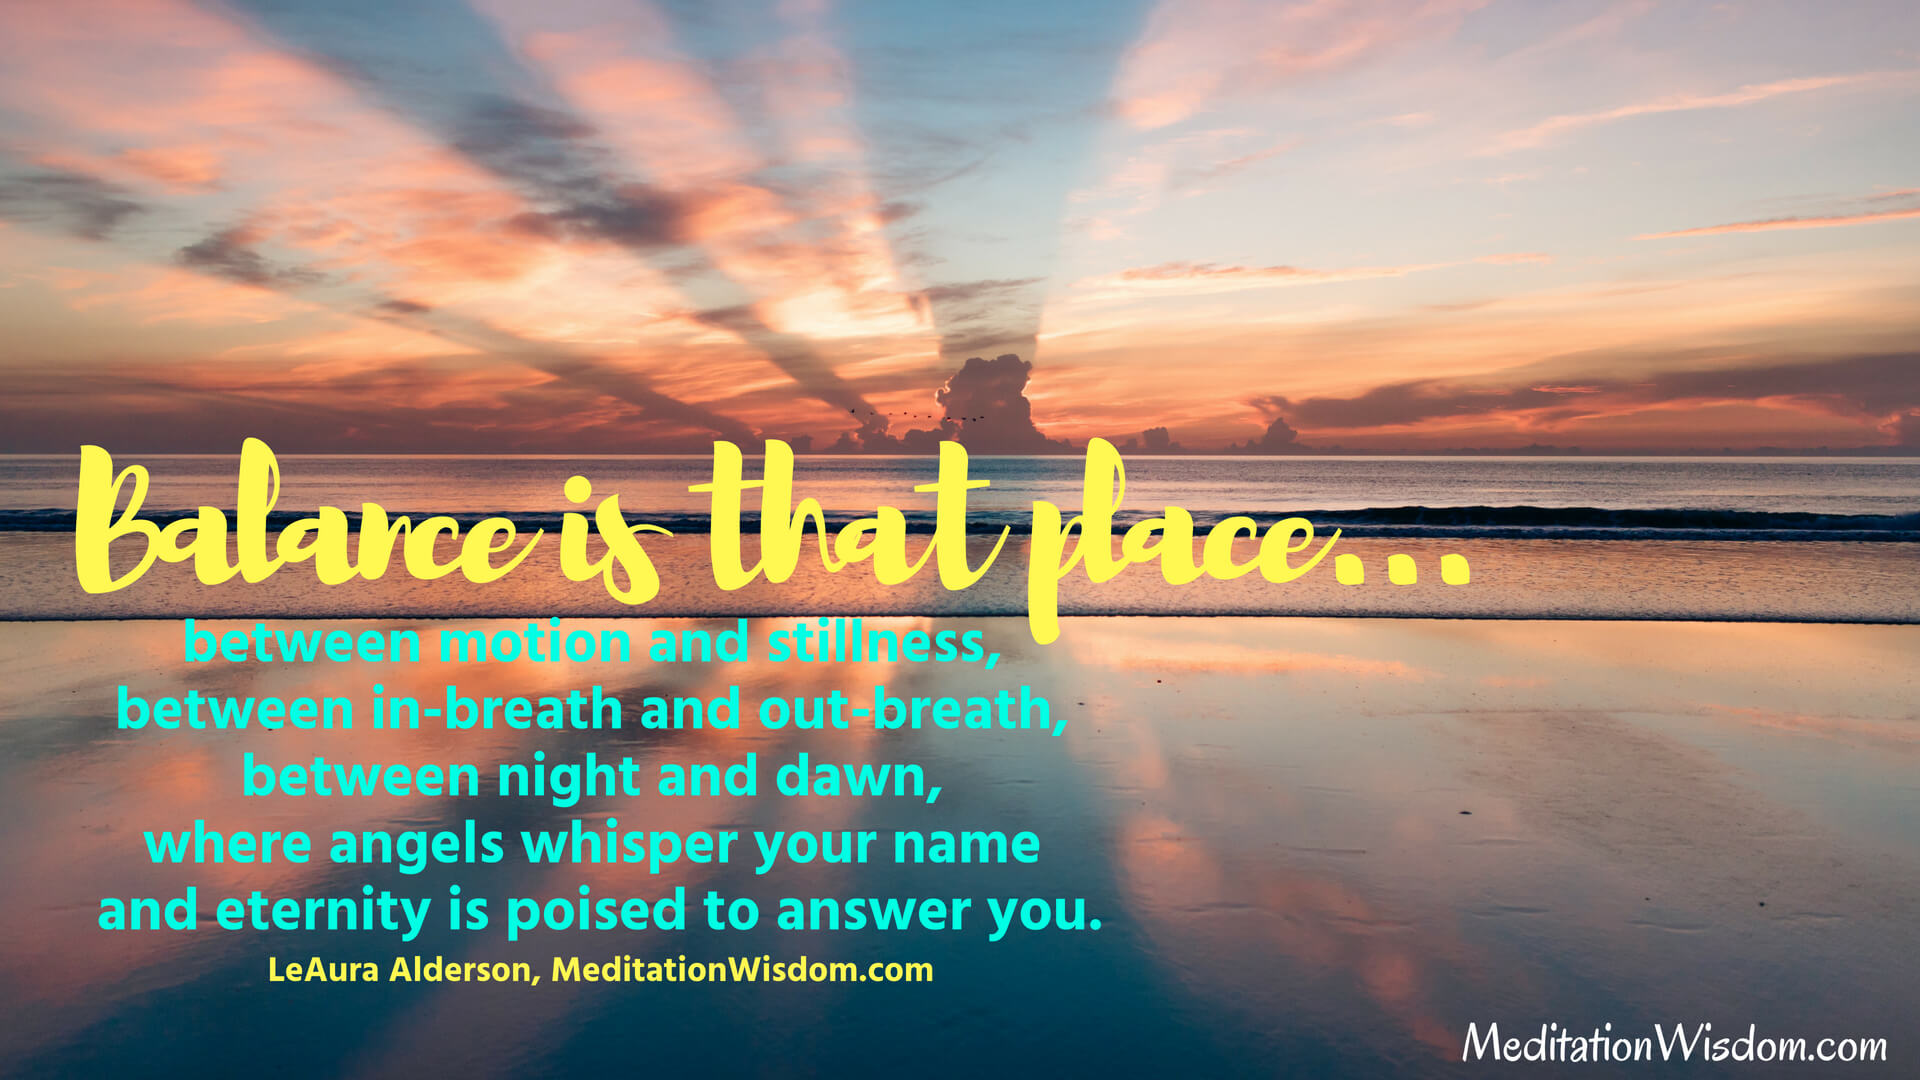 Balance is that place between motion and stillness, between in-breath and out-breath, between night and dawn, where angels whisper your name and eternity is poised to answer you. ~LeAura Alderson, MeditationWisdom.com #quotes #balance #peace #meditation